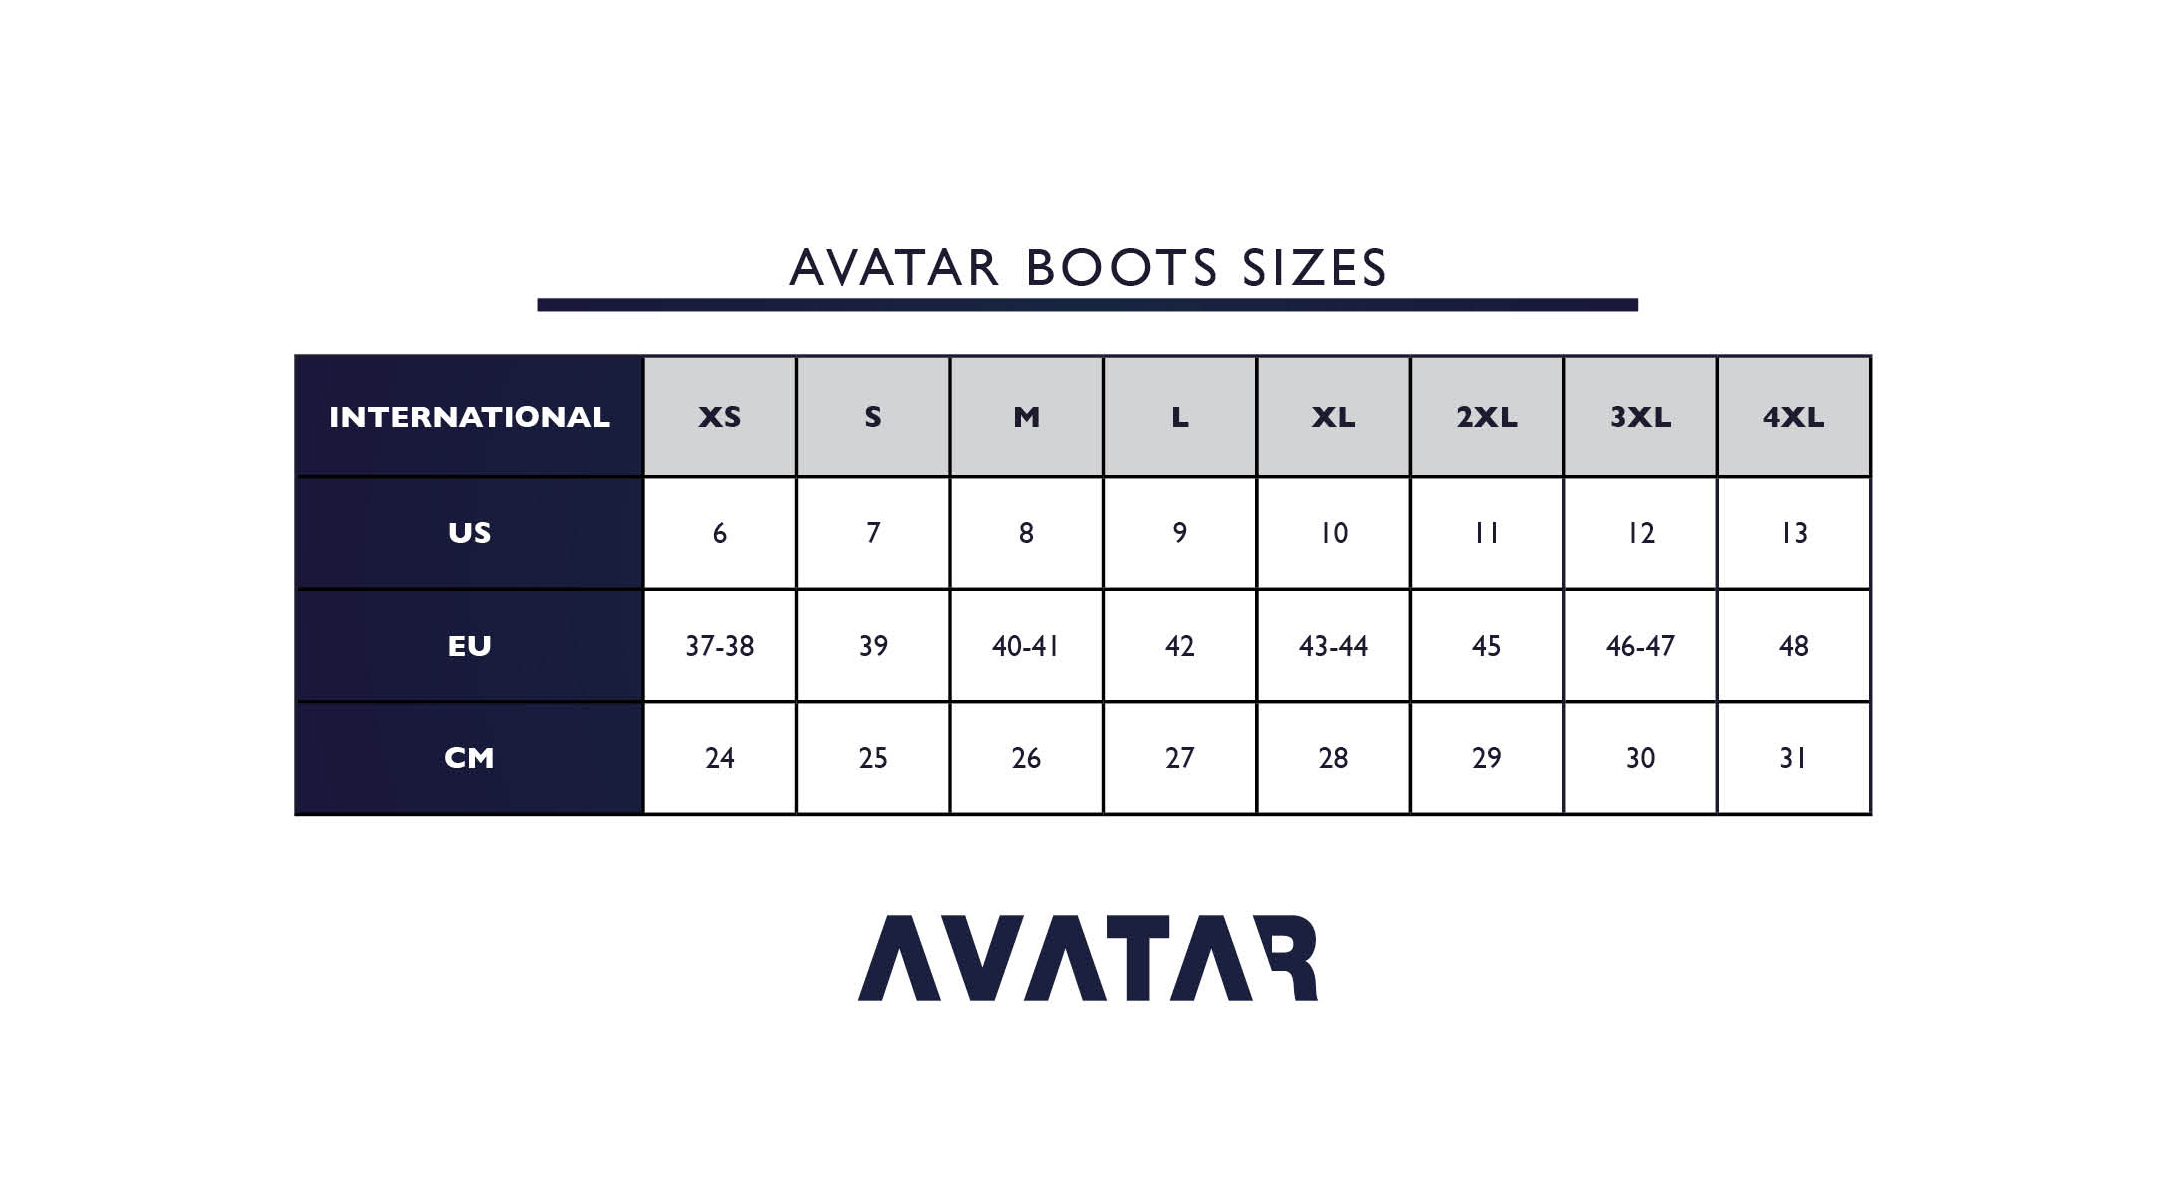 Avatar drysuit boot size guide